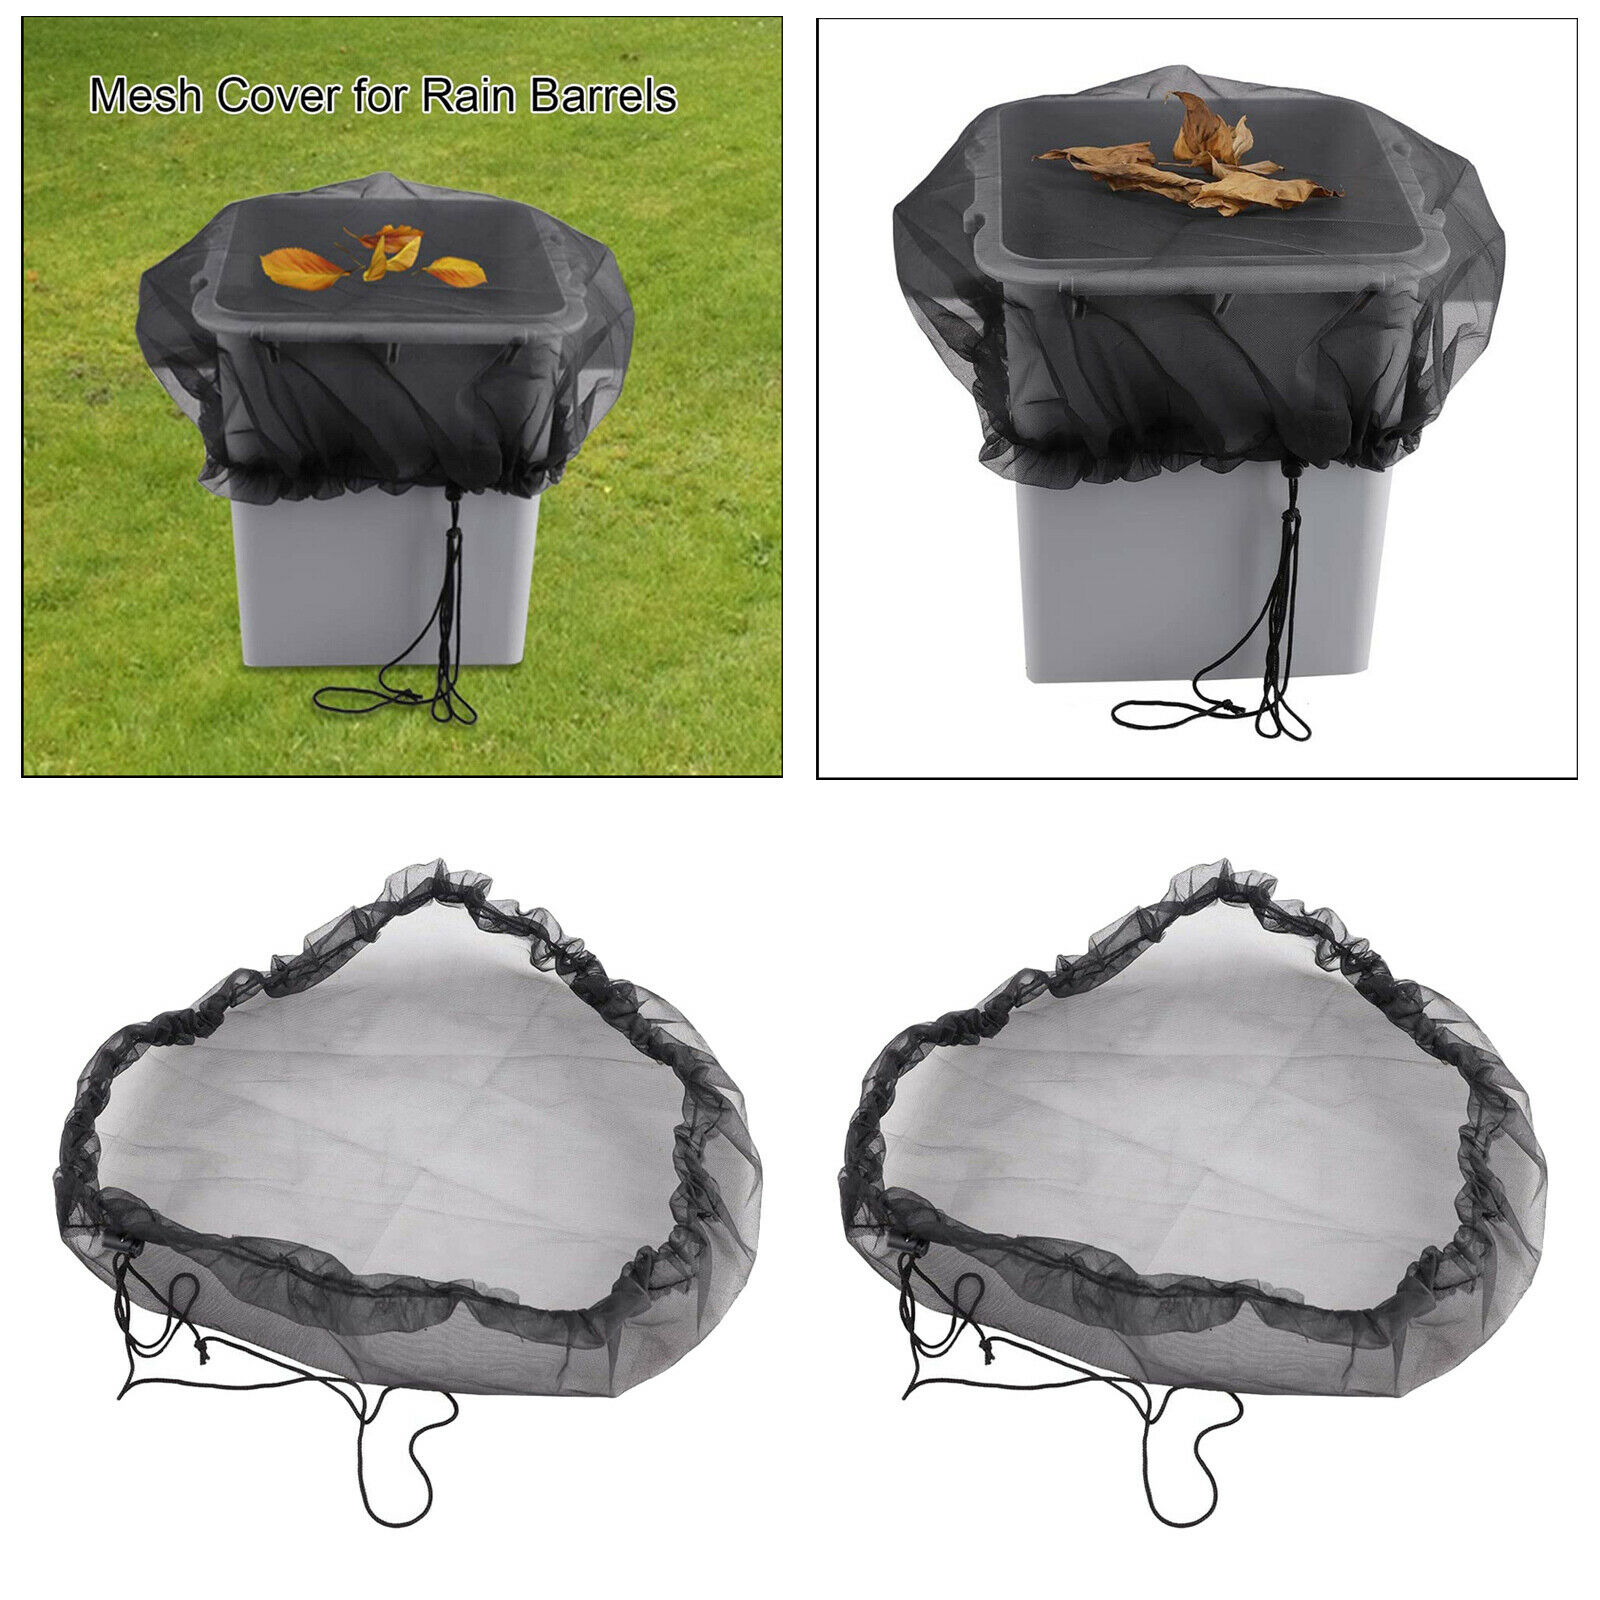 Garden Mesh Cover Buckets Cover Netting for Rain Barrels with Draw String